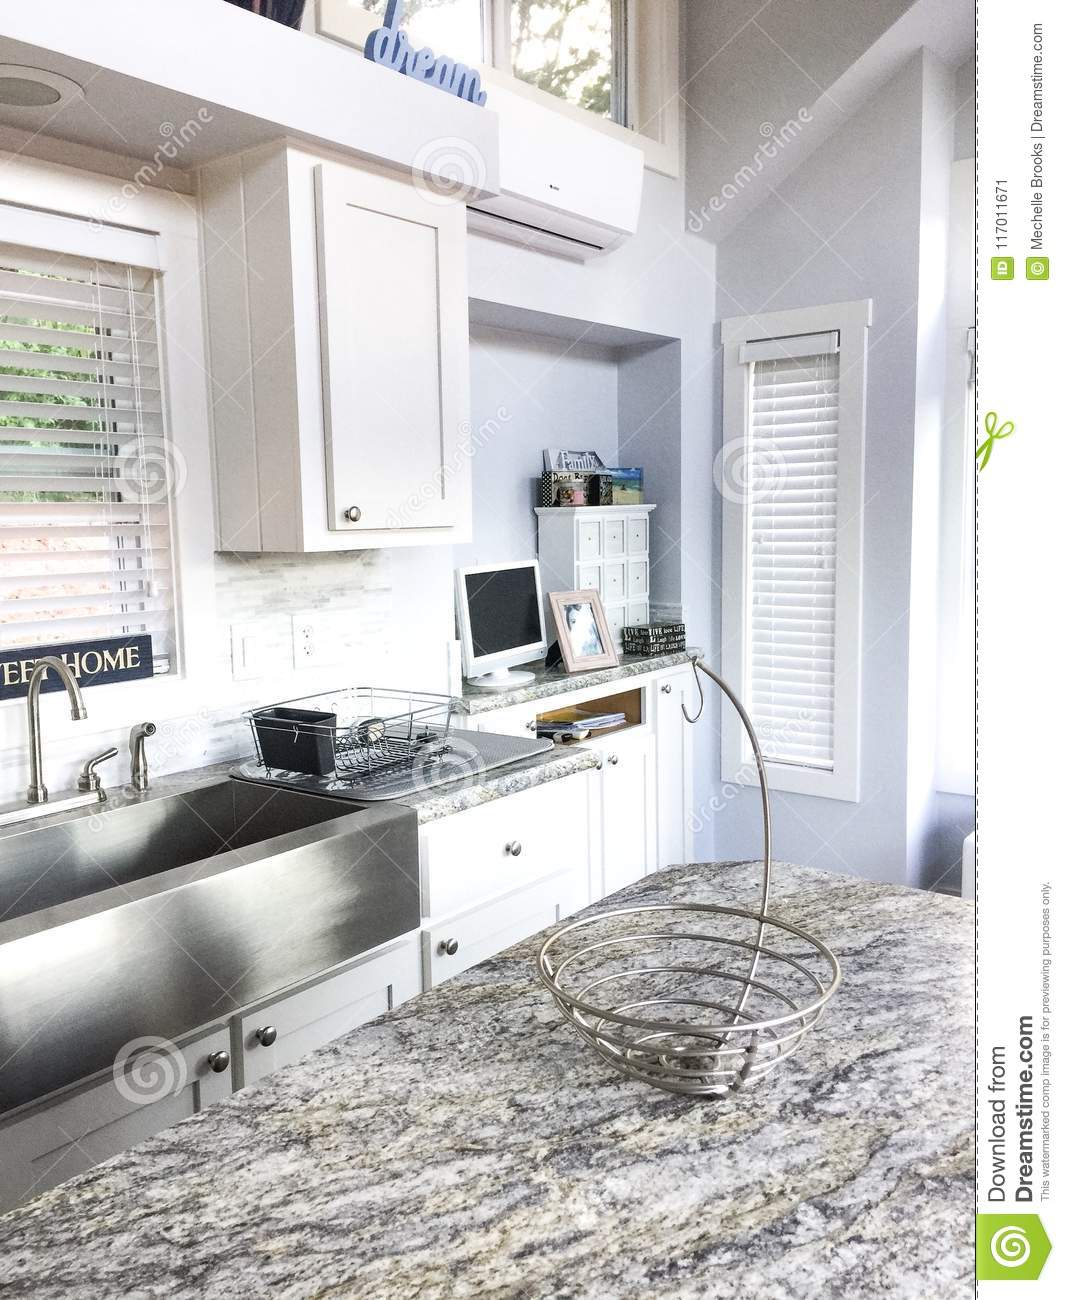 Dream Big Live Small In A Tiny House In Texas Stock Image Image Of White Saving 117011671